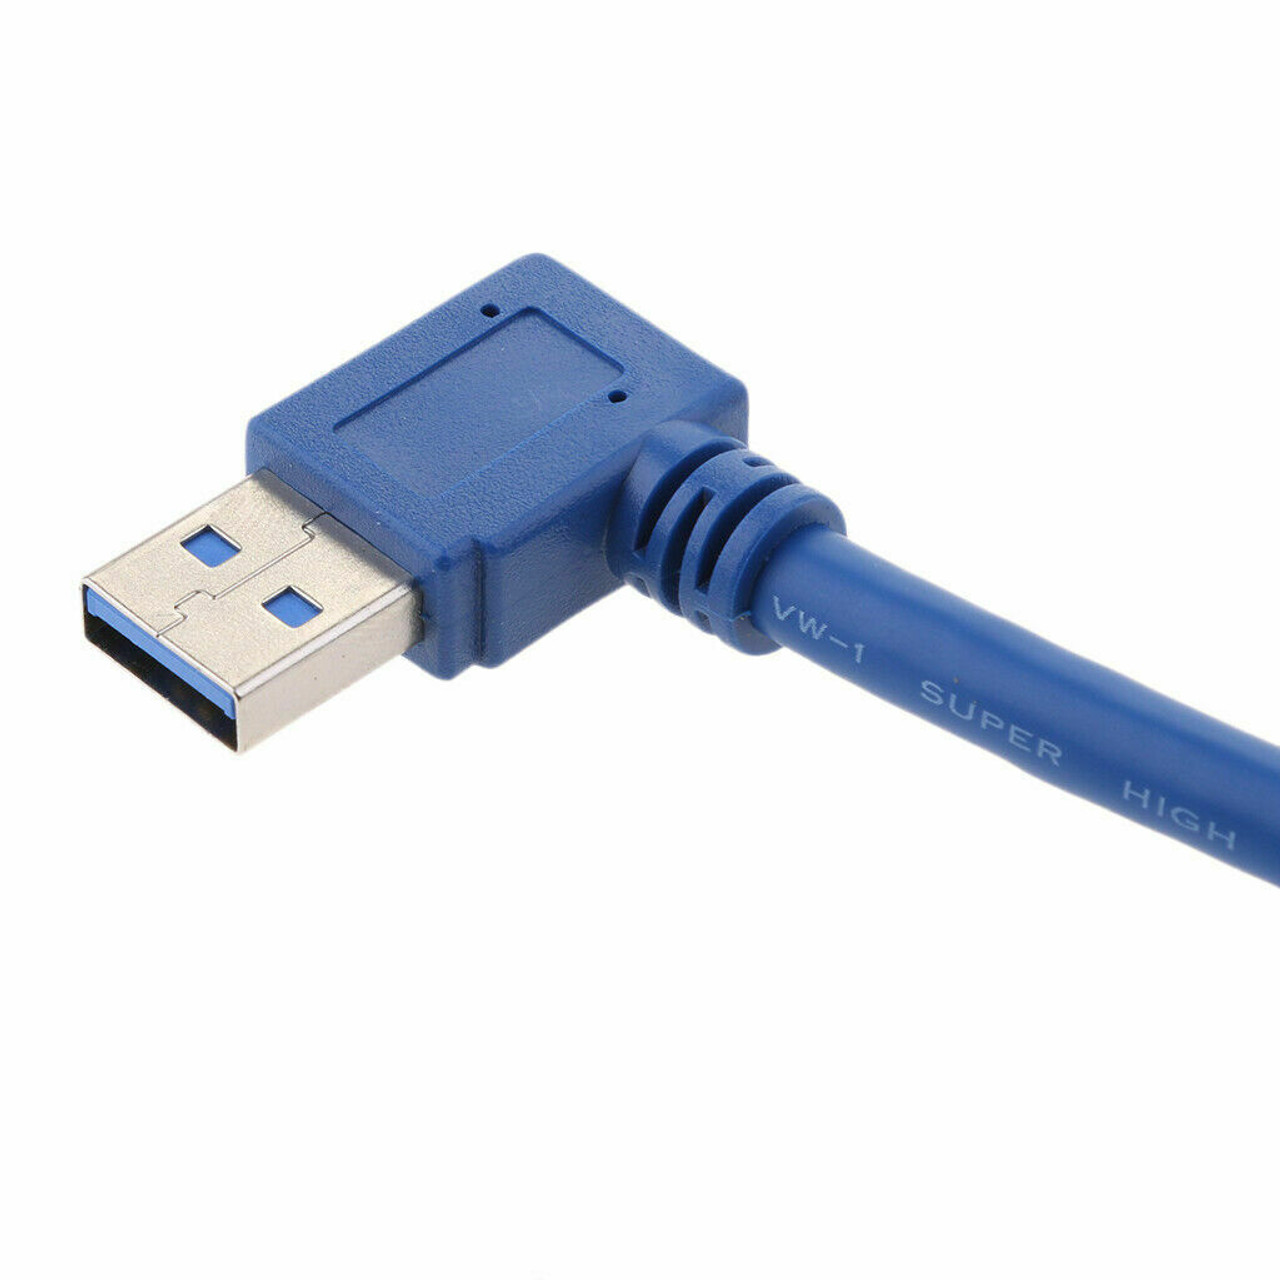 USB 3.0 Right Angle Male to USB 3.0 Female Extension Cable 1 FT Super Speed FAST